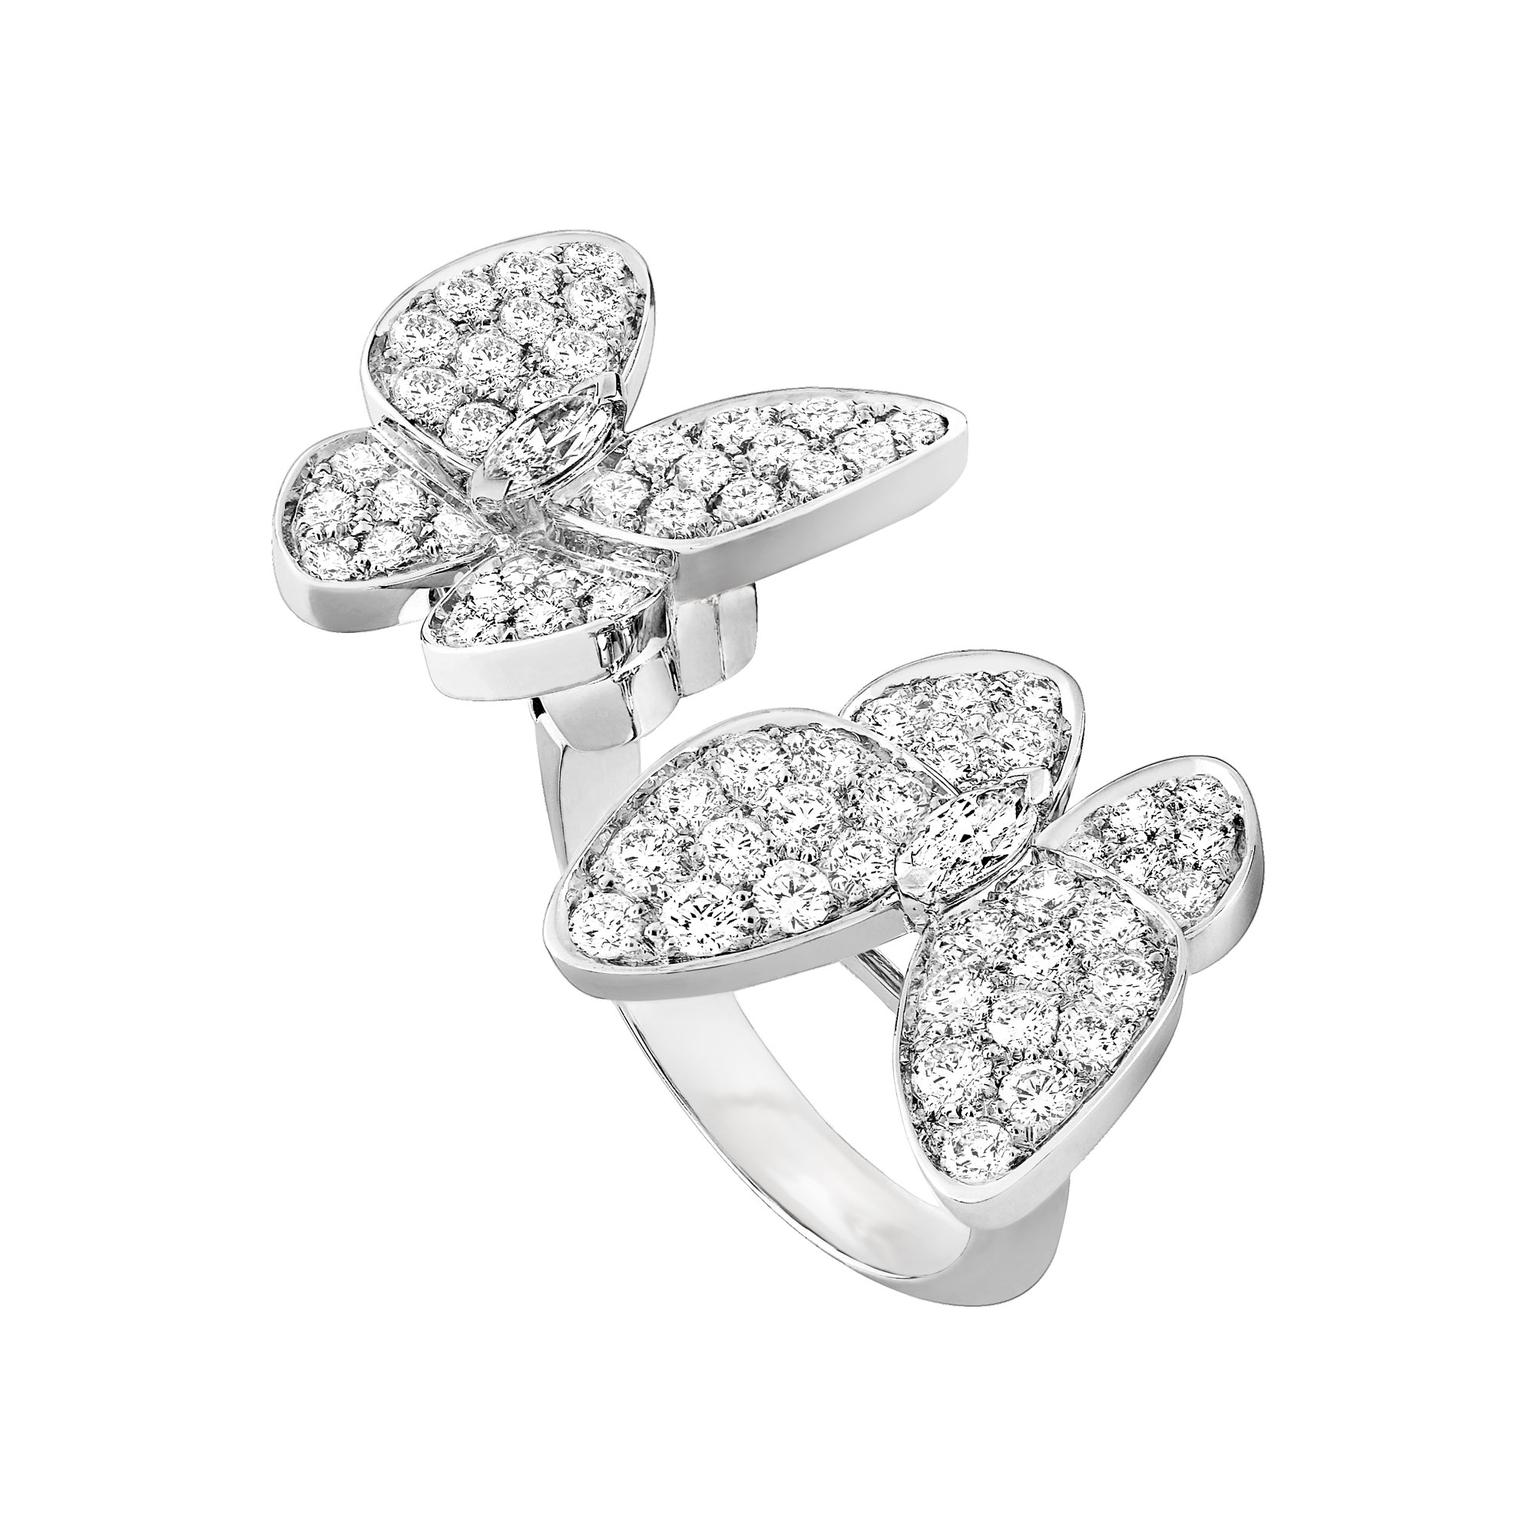 Van Cleef & Arpels diamond butterfly ring